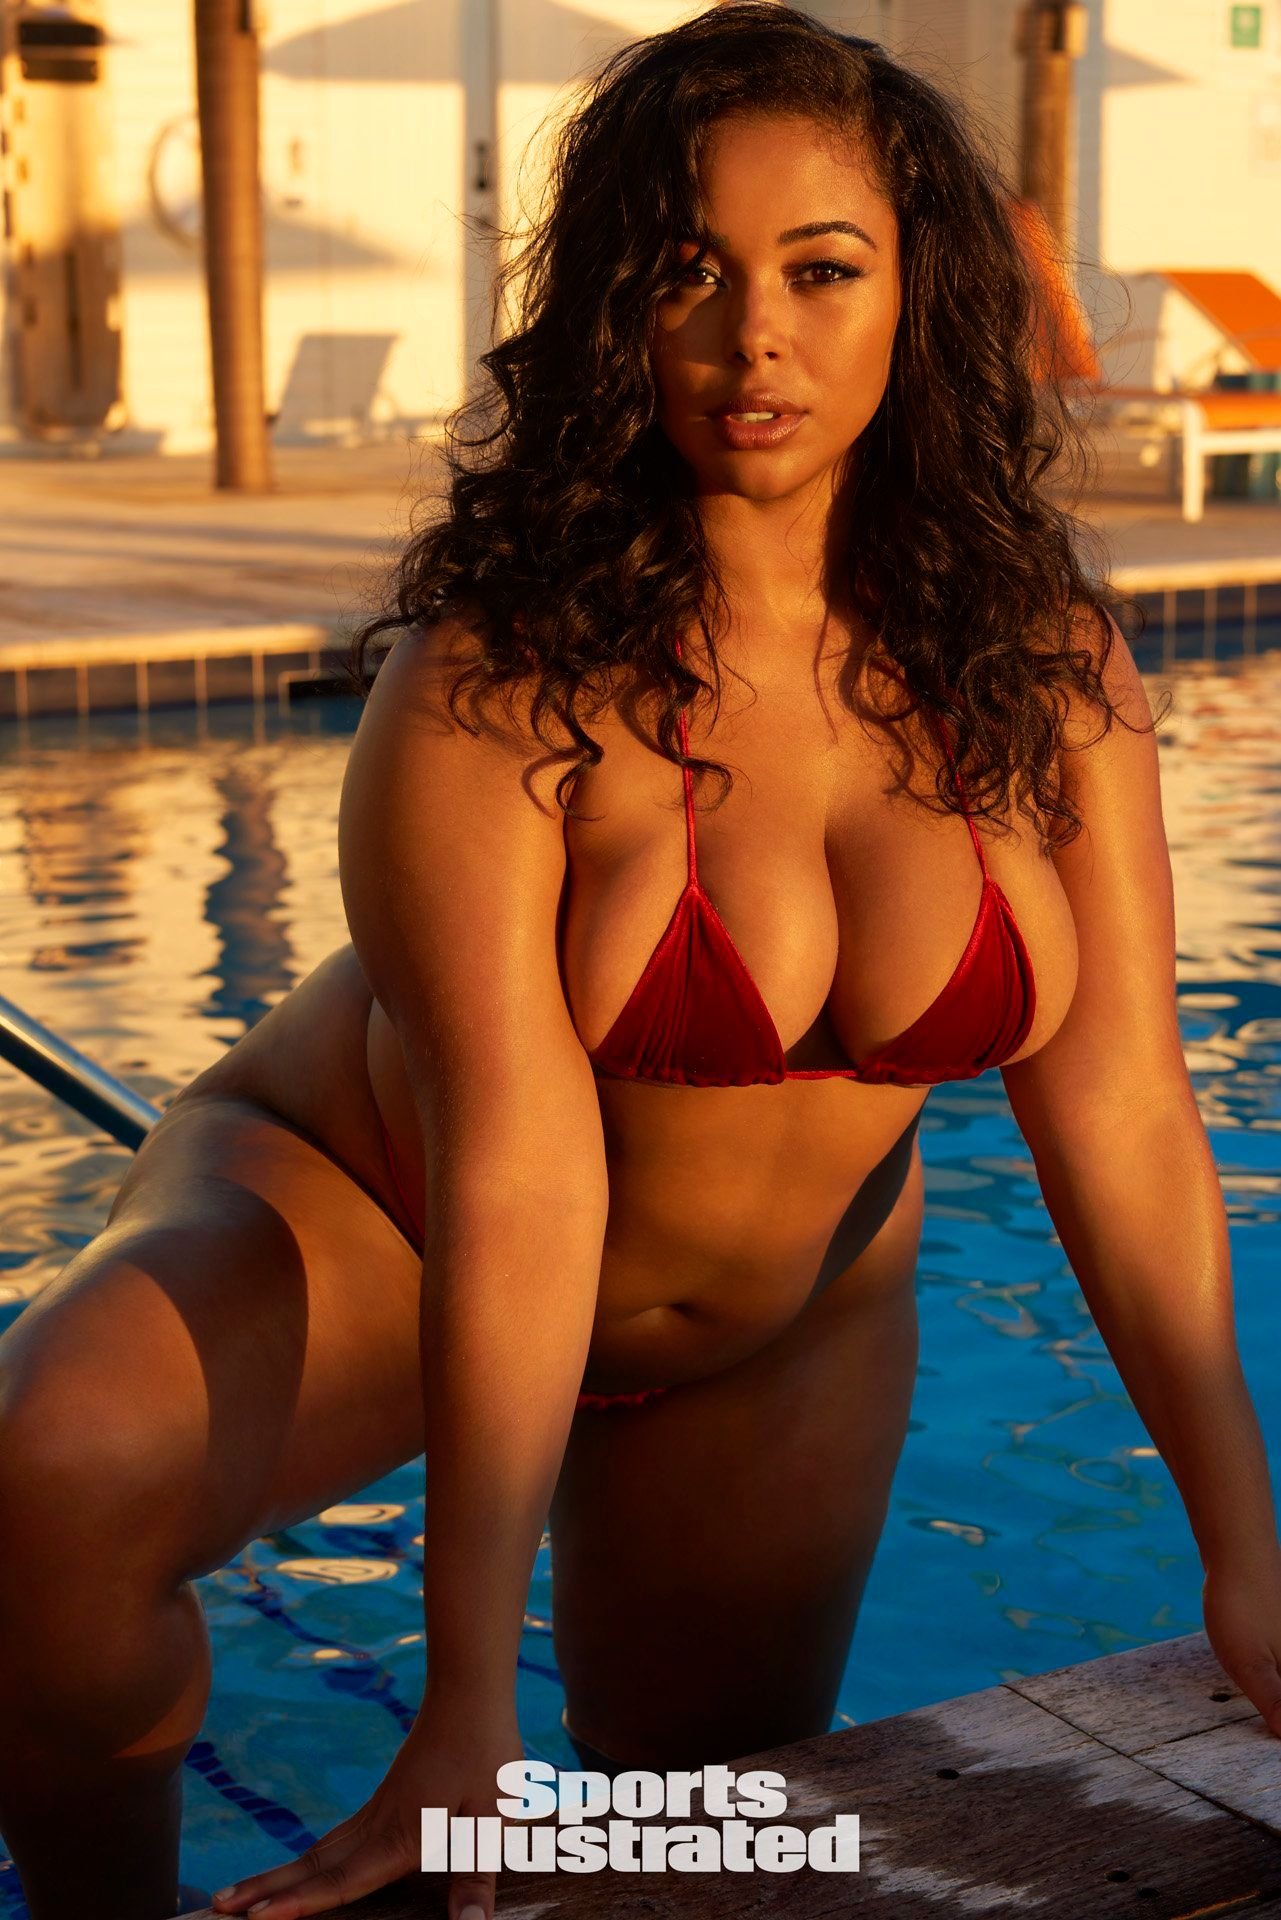 Size swimsuit illustrated Plus model sports